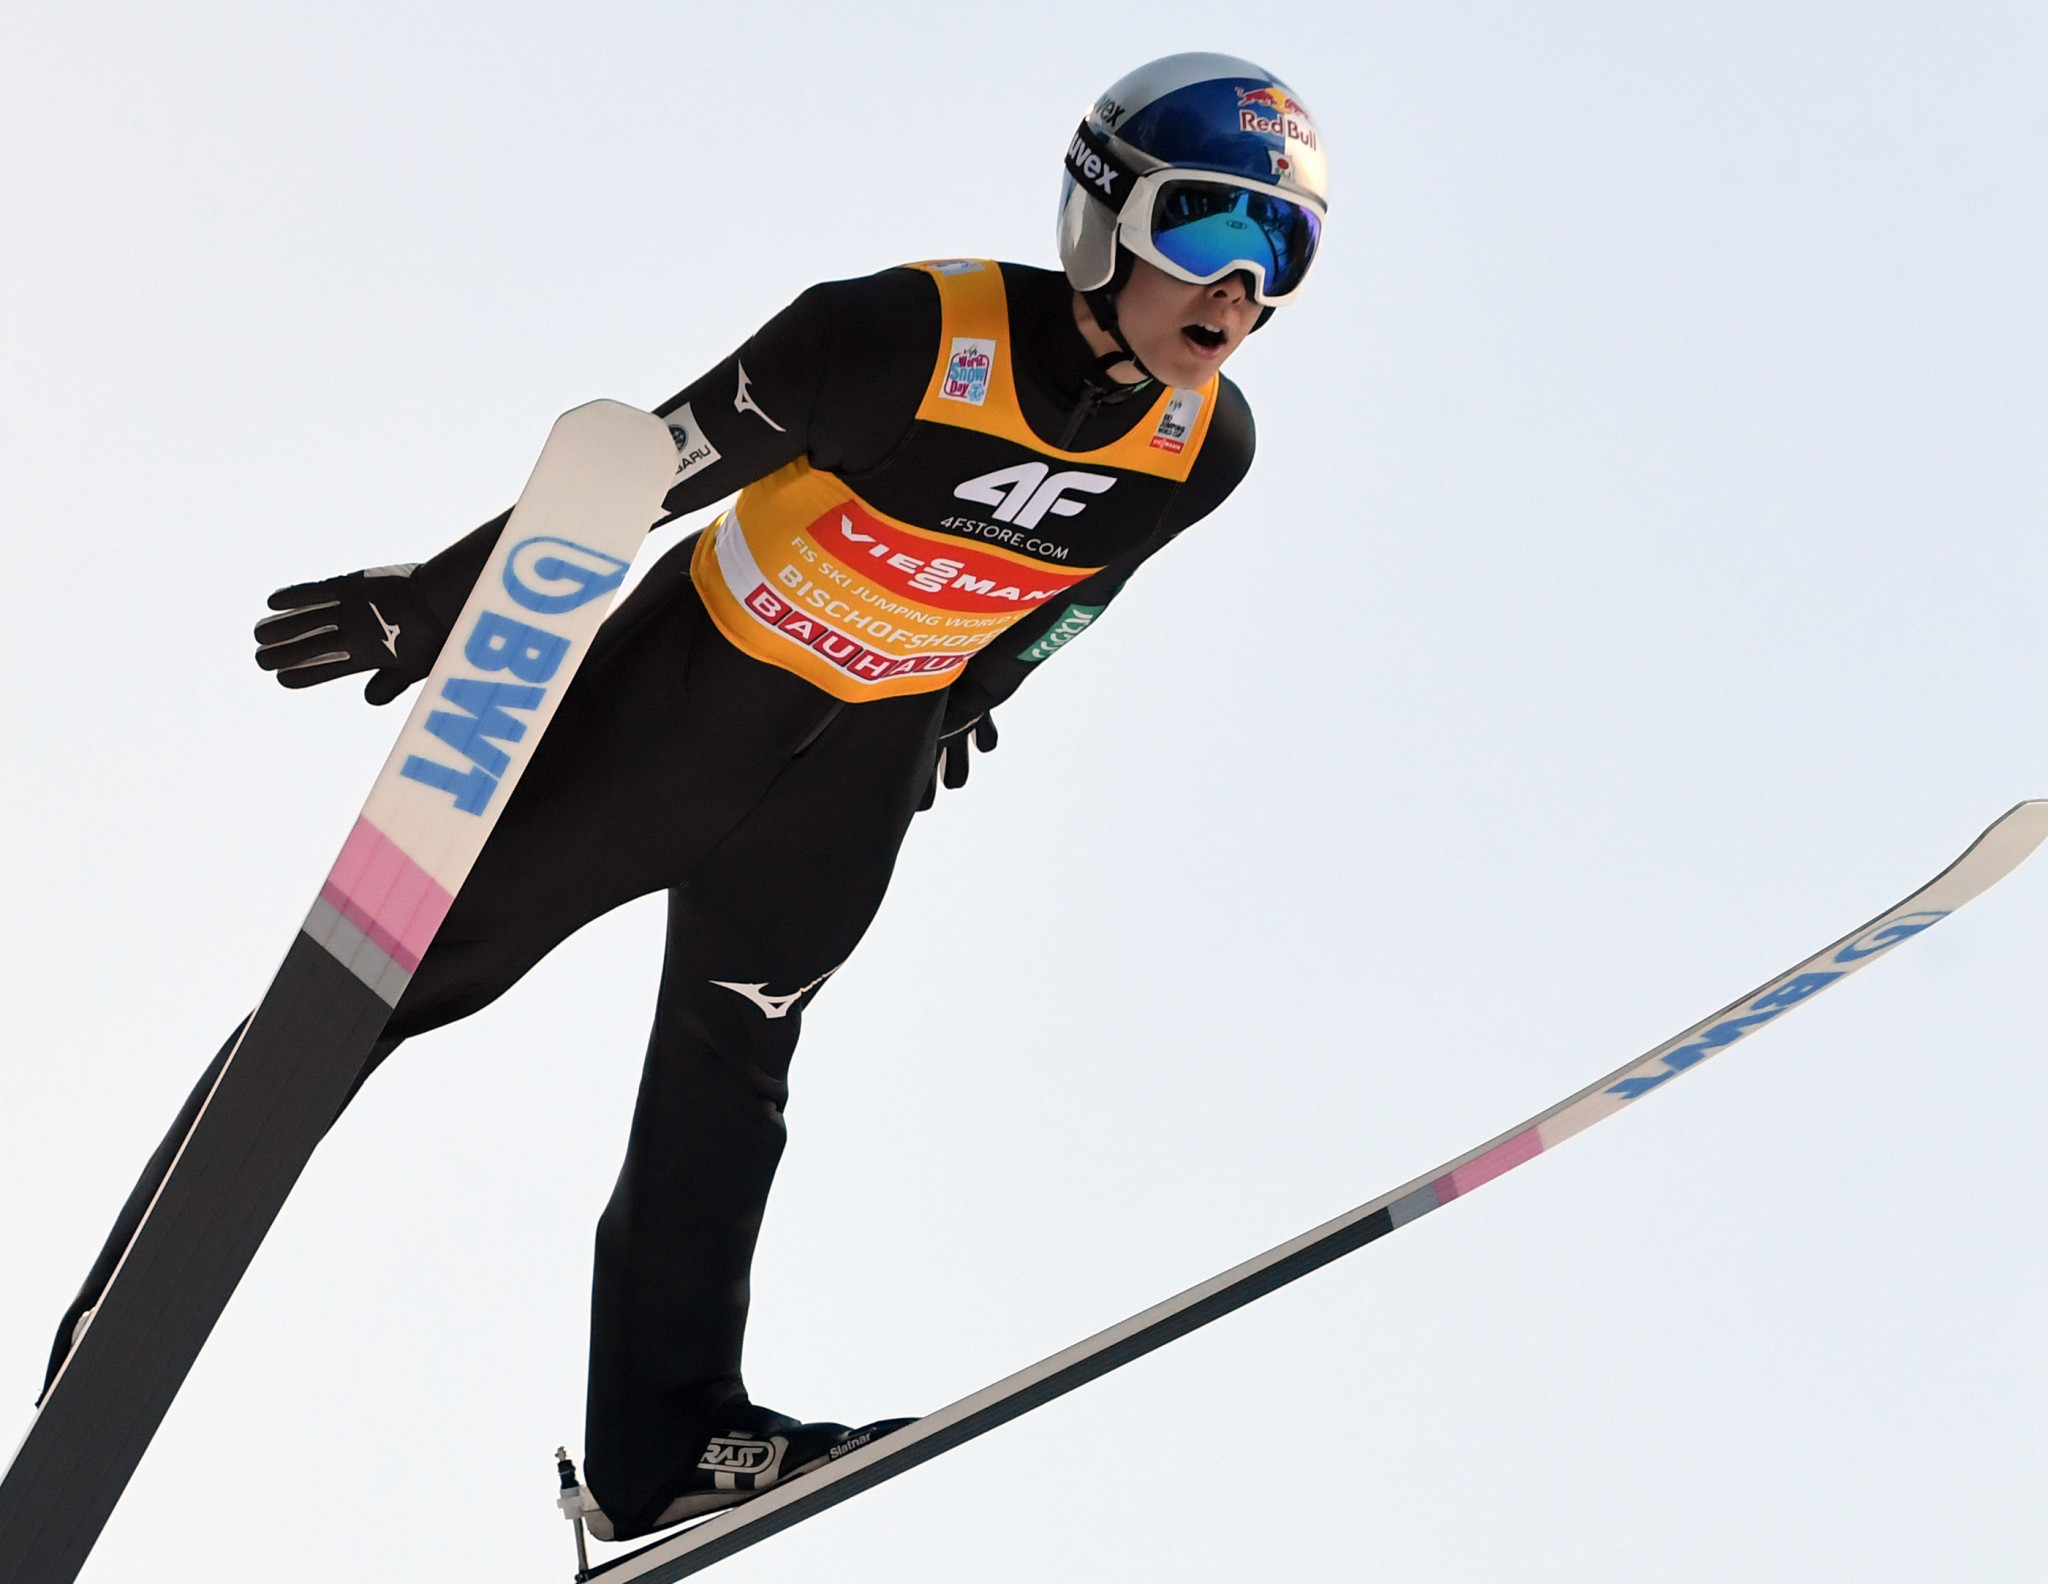 Defending FIS Ski Jumping World Cup champion Ryoyu Kobayashi topped qualifying at Titisee-Neustadt ©Getty Images